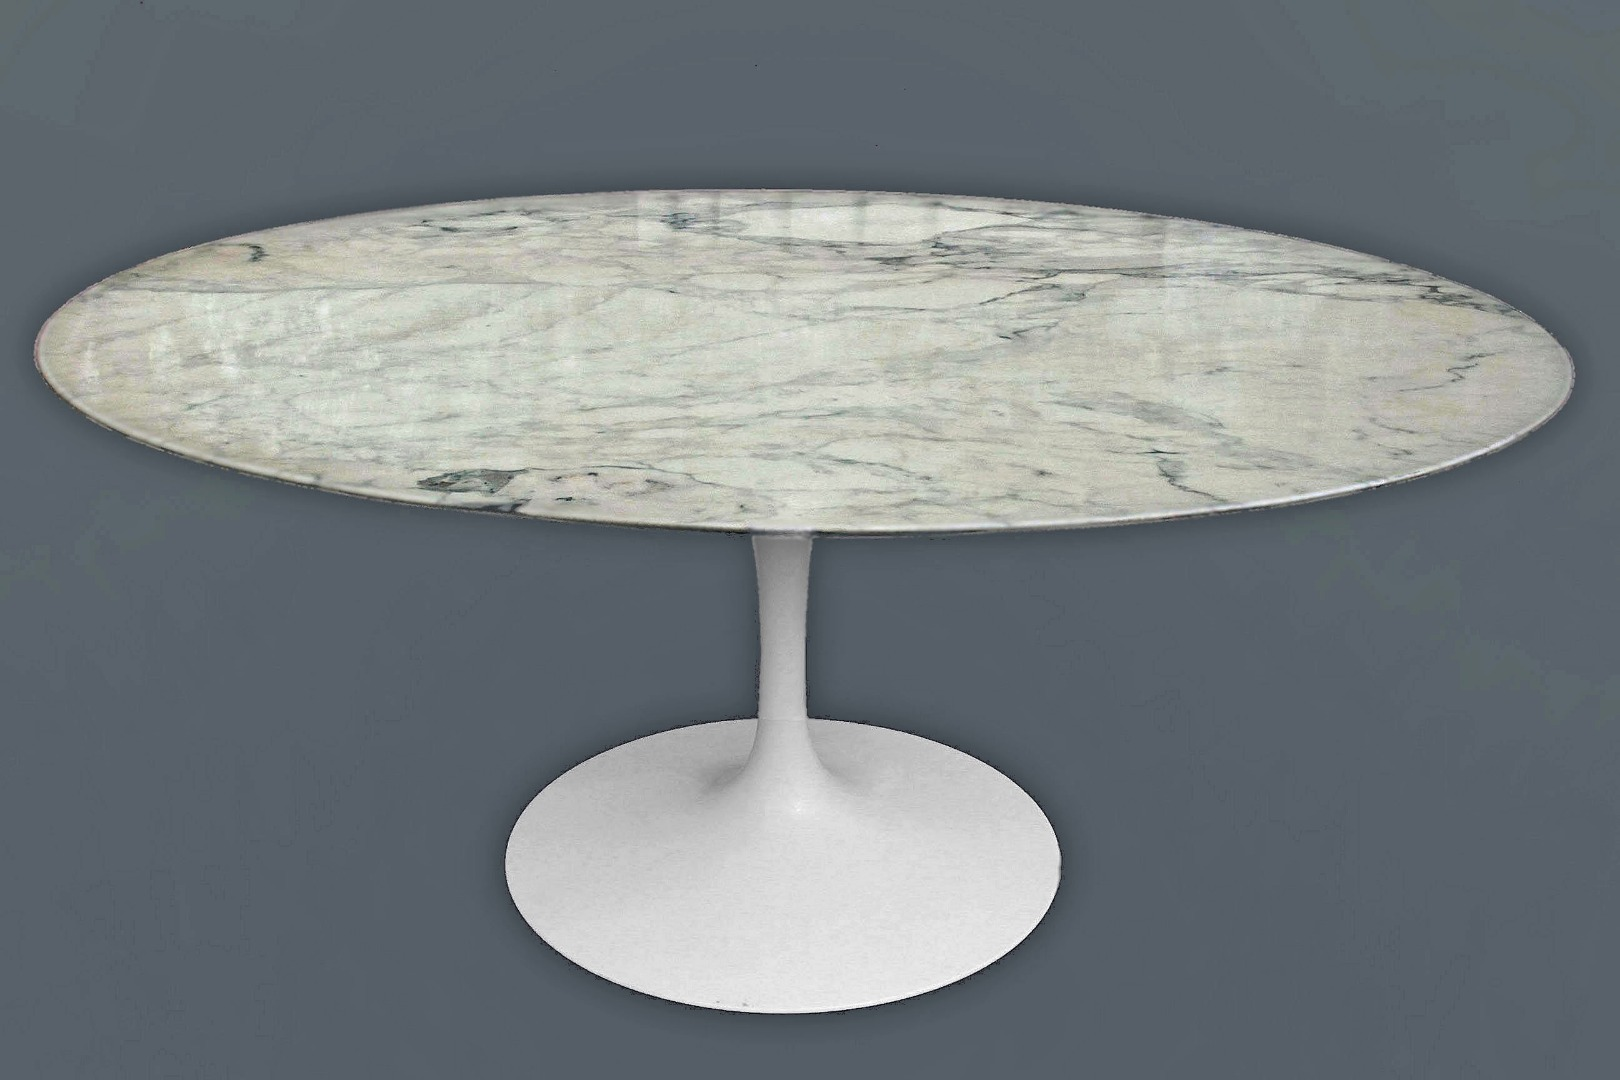 TABLE BY SAARINEN FOR KNOLL